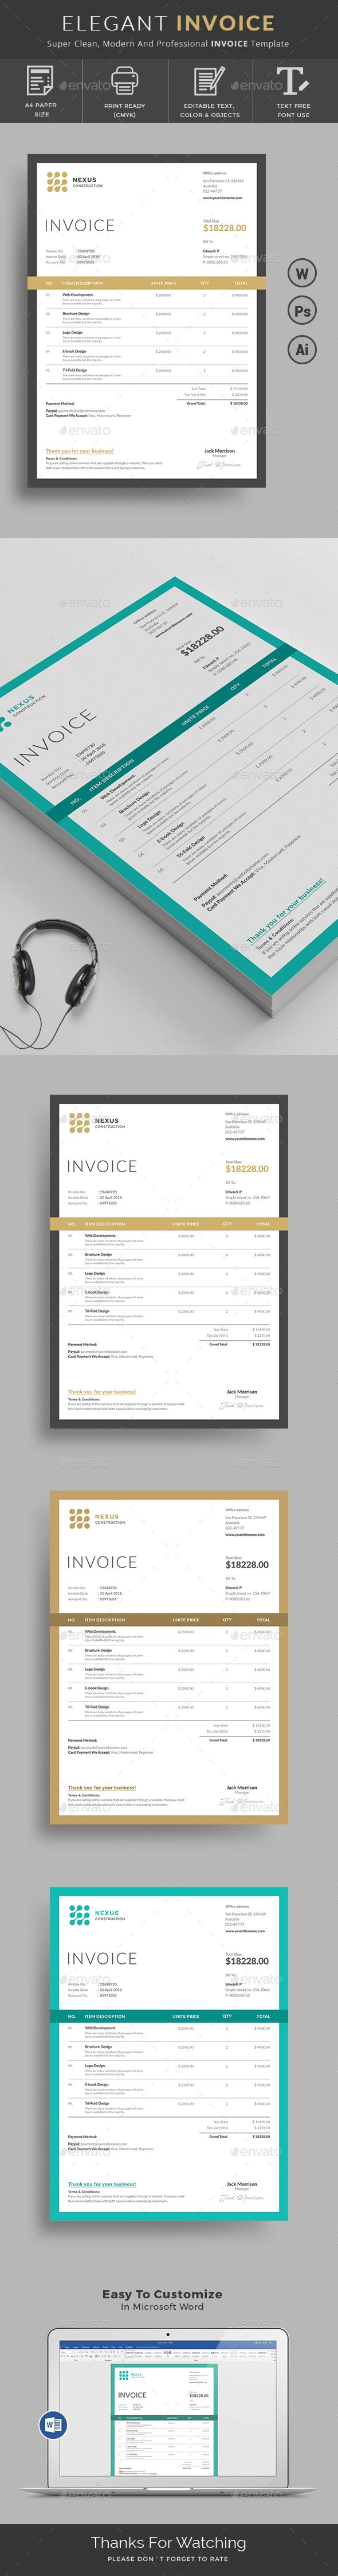 How To Make A Invoice In Excel Invoice  Template Brand Identity And Print Templates